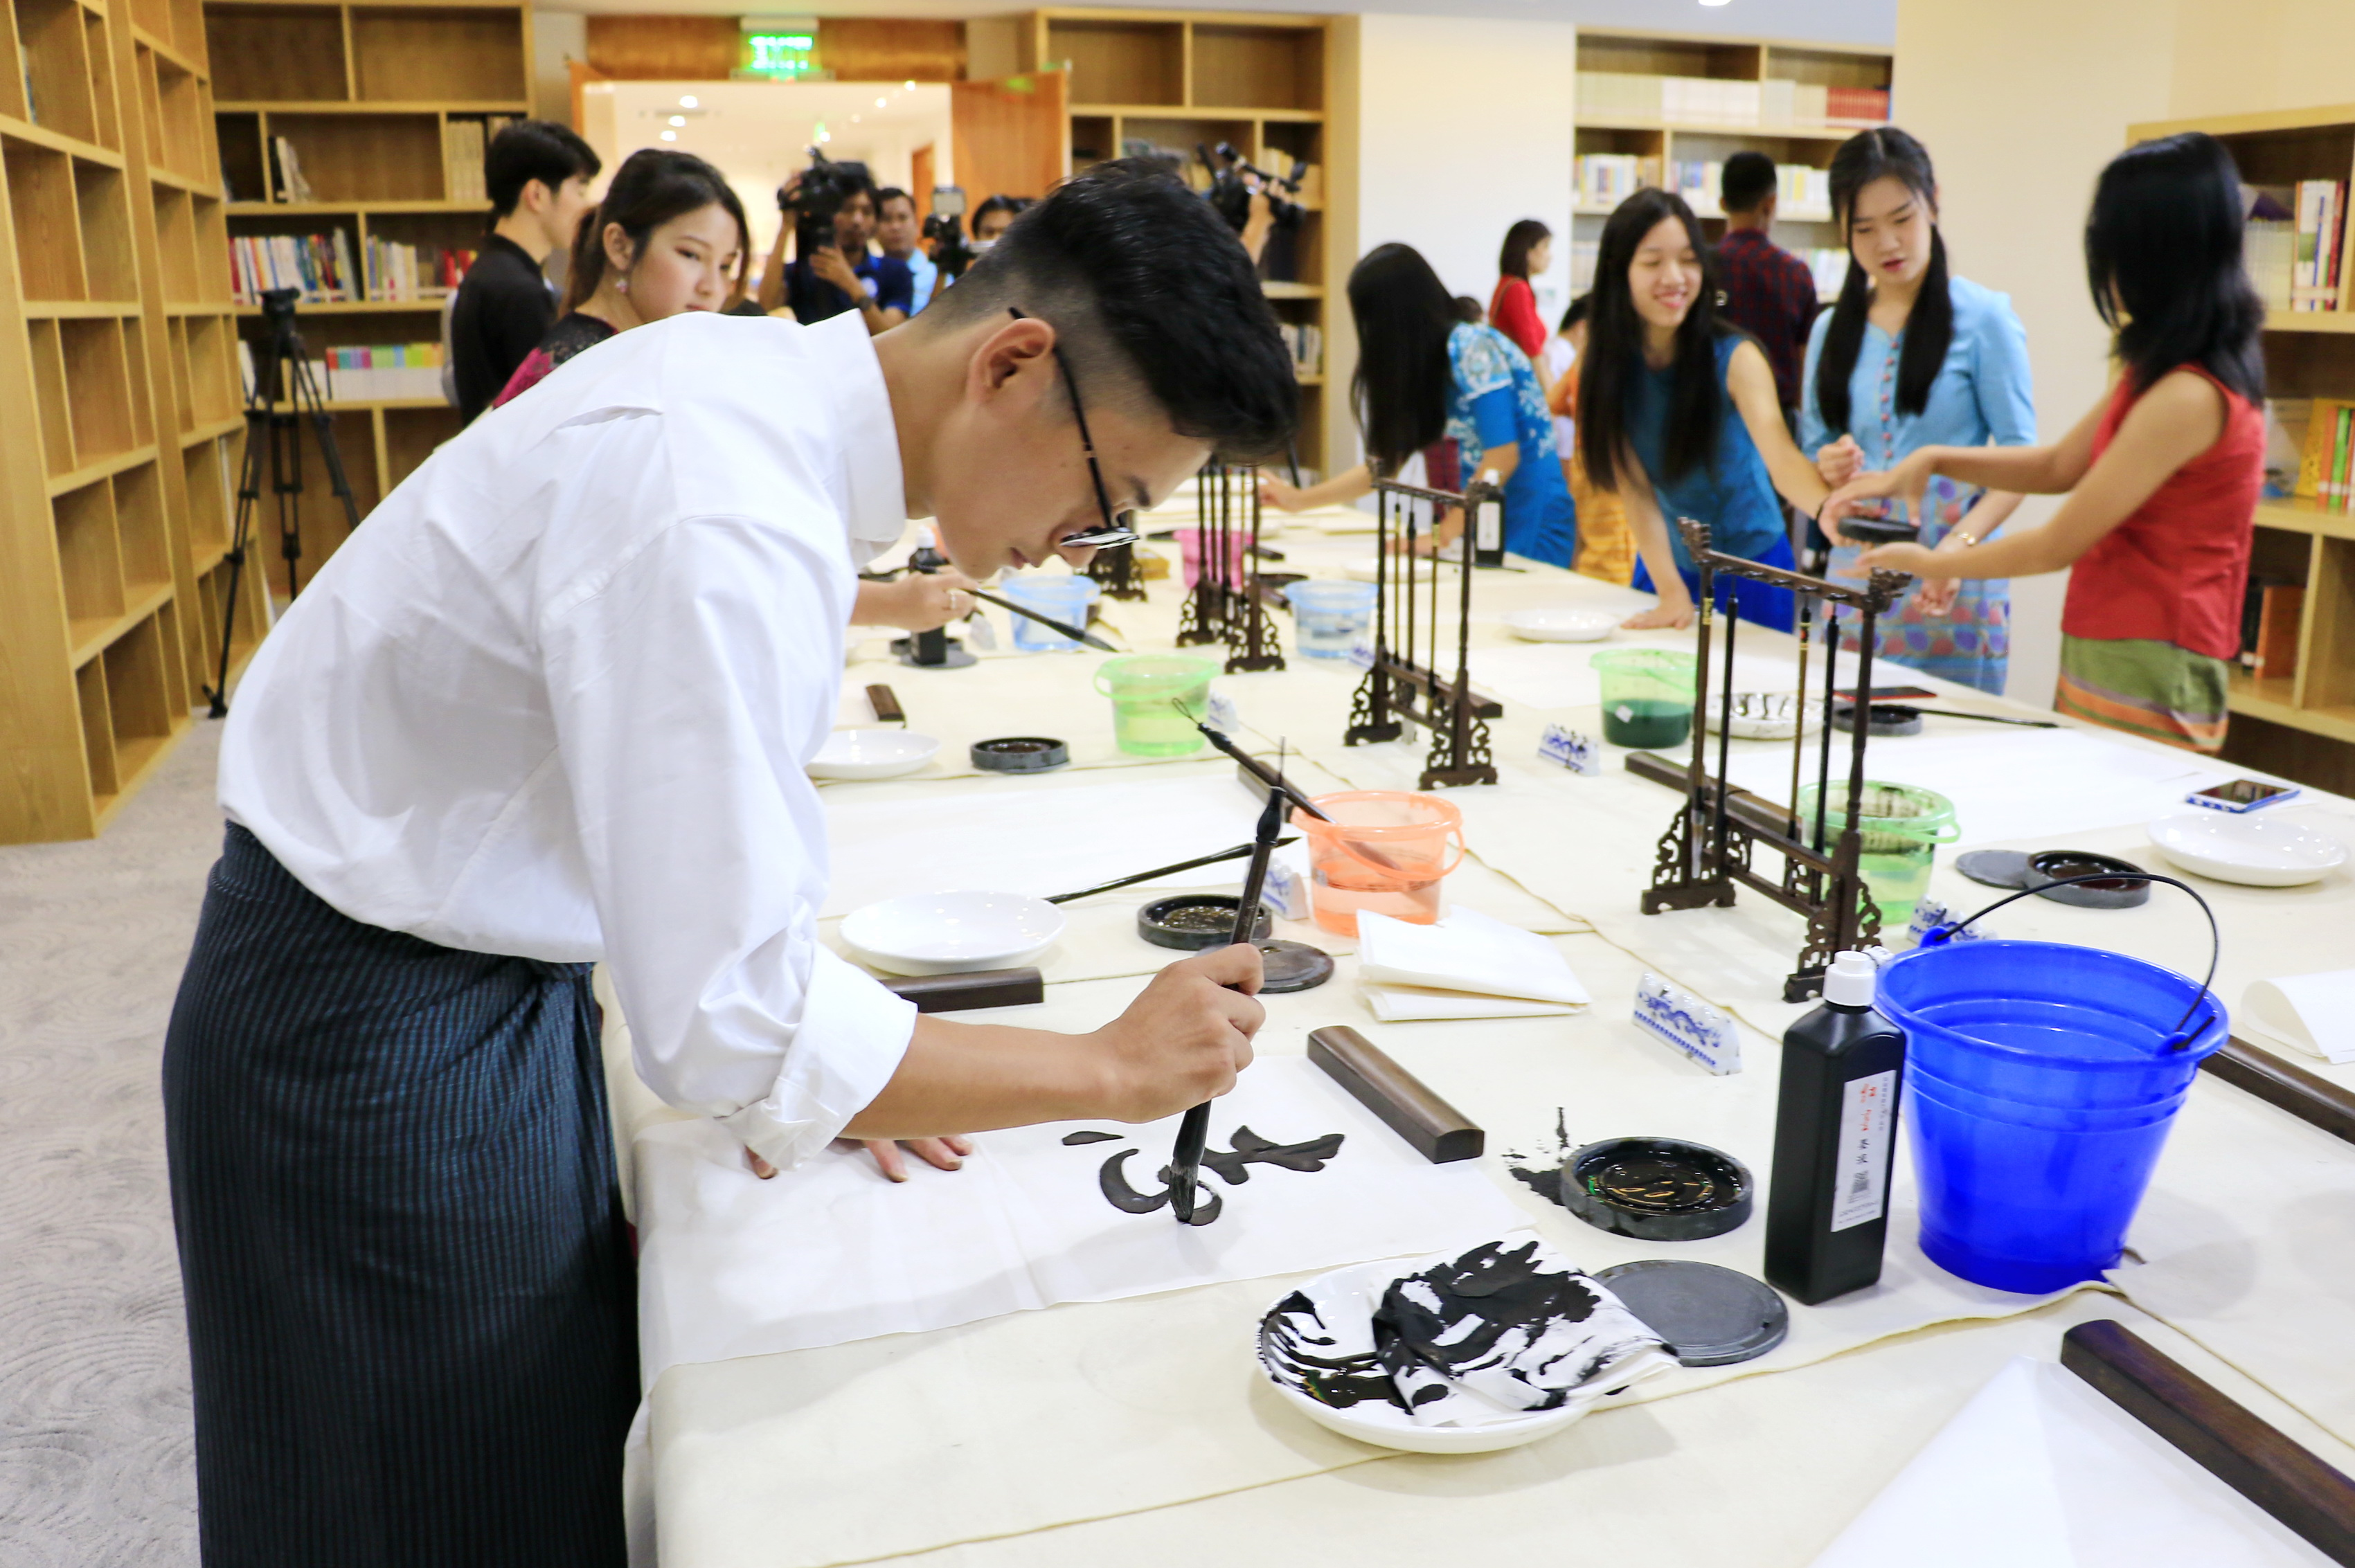 A Myanmar practices Chinese calligraphy at the China Cultural Center in Yangon, Myanmar, on July 7, 2018. [Photo: China Plus/Tu Yun]